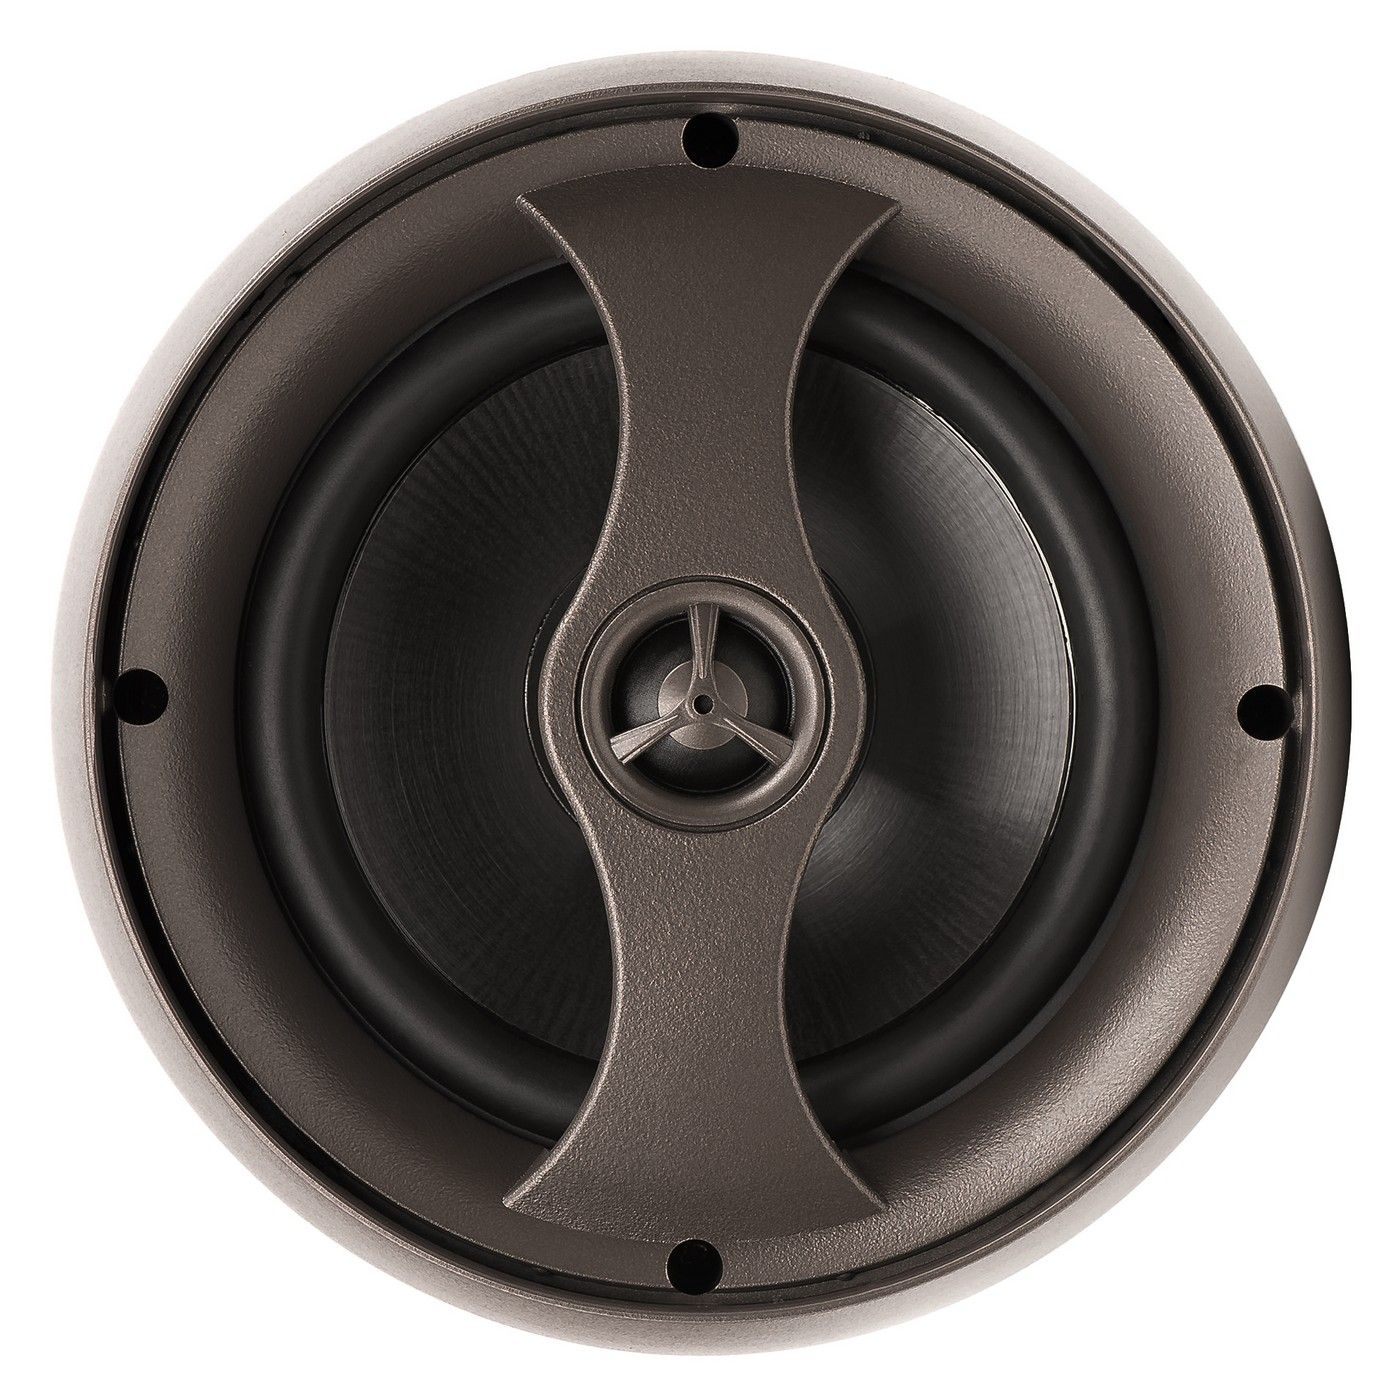 "OSD Audio Forza 6 Pendant Speaker Hanging or Standalone 6 5"" Woofer"